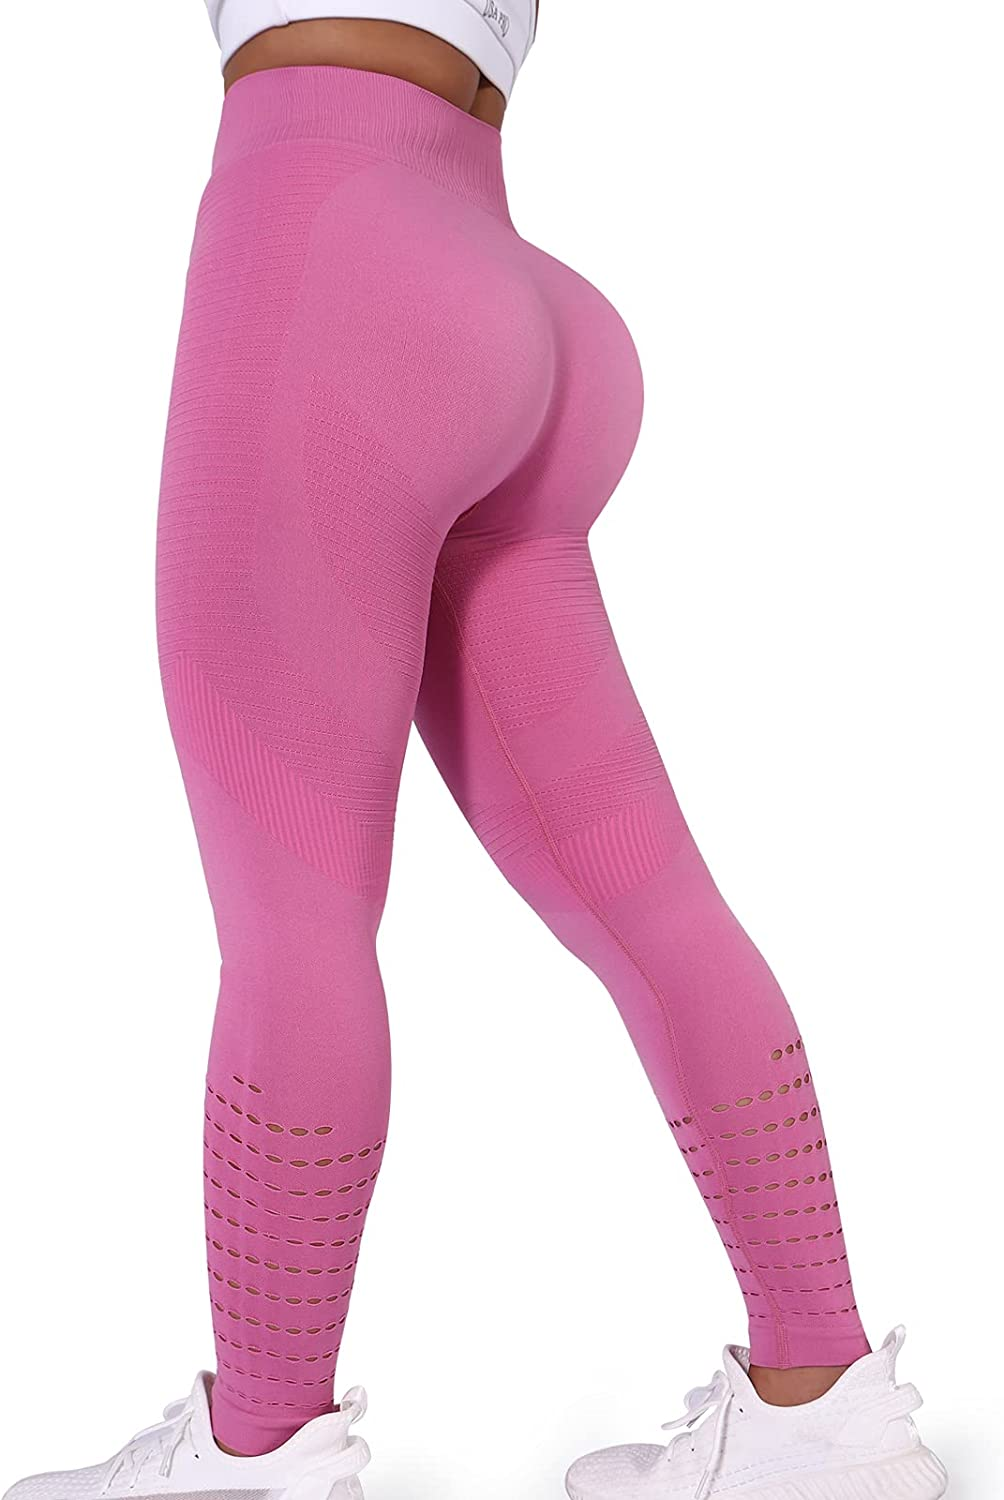 Workout Leggings for Women Hollow Max 76% OFF Out Tummy Waist High Stripe Co Virginia Beach Mall